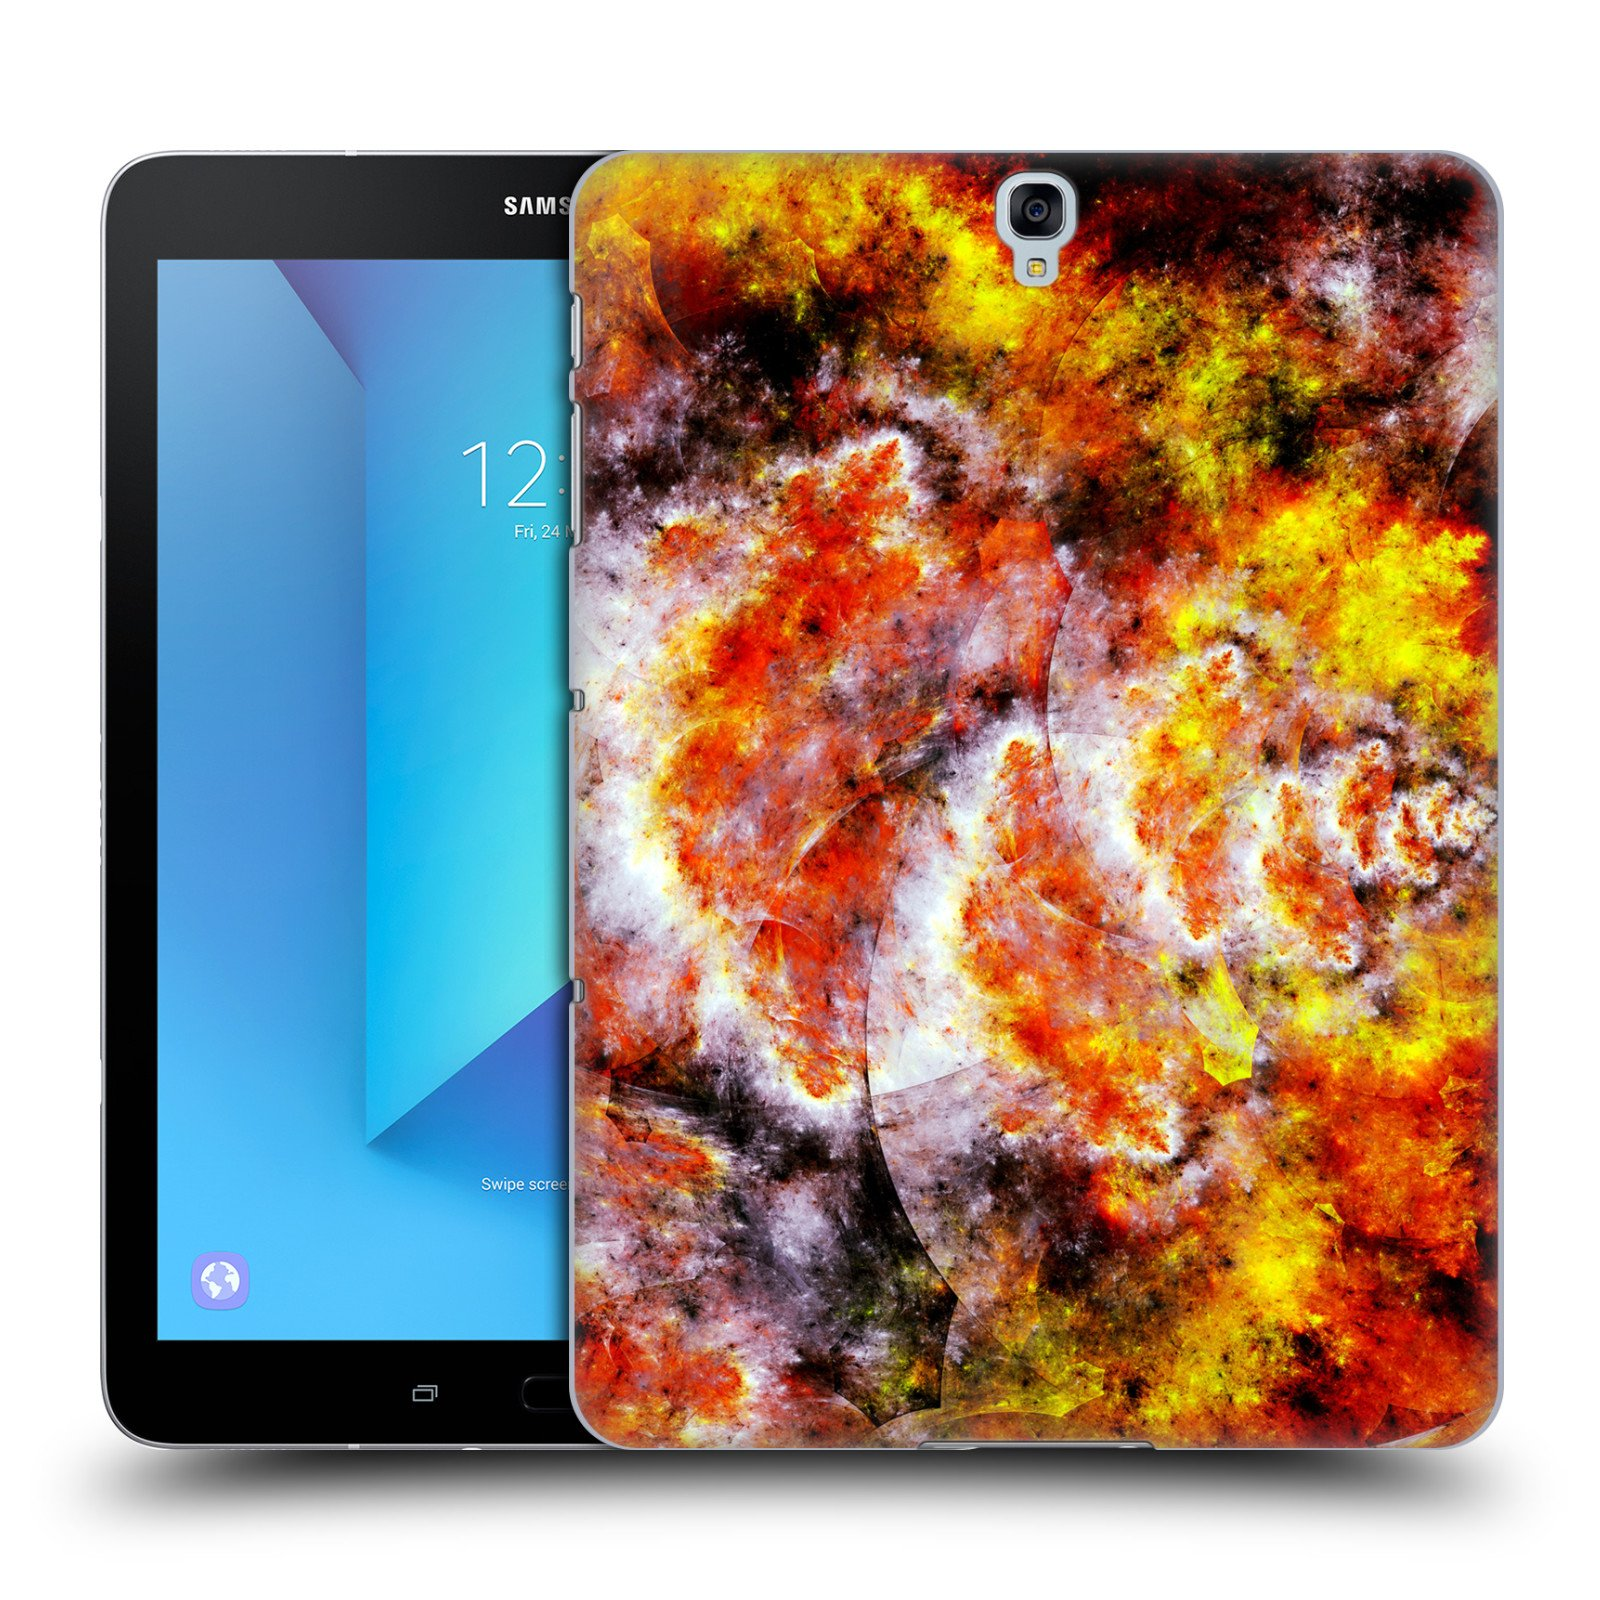 Official Andi GreyScale Torched Solar Flames Hard Back Case for Samsung Galaxy Tab S3 9.7